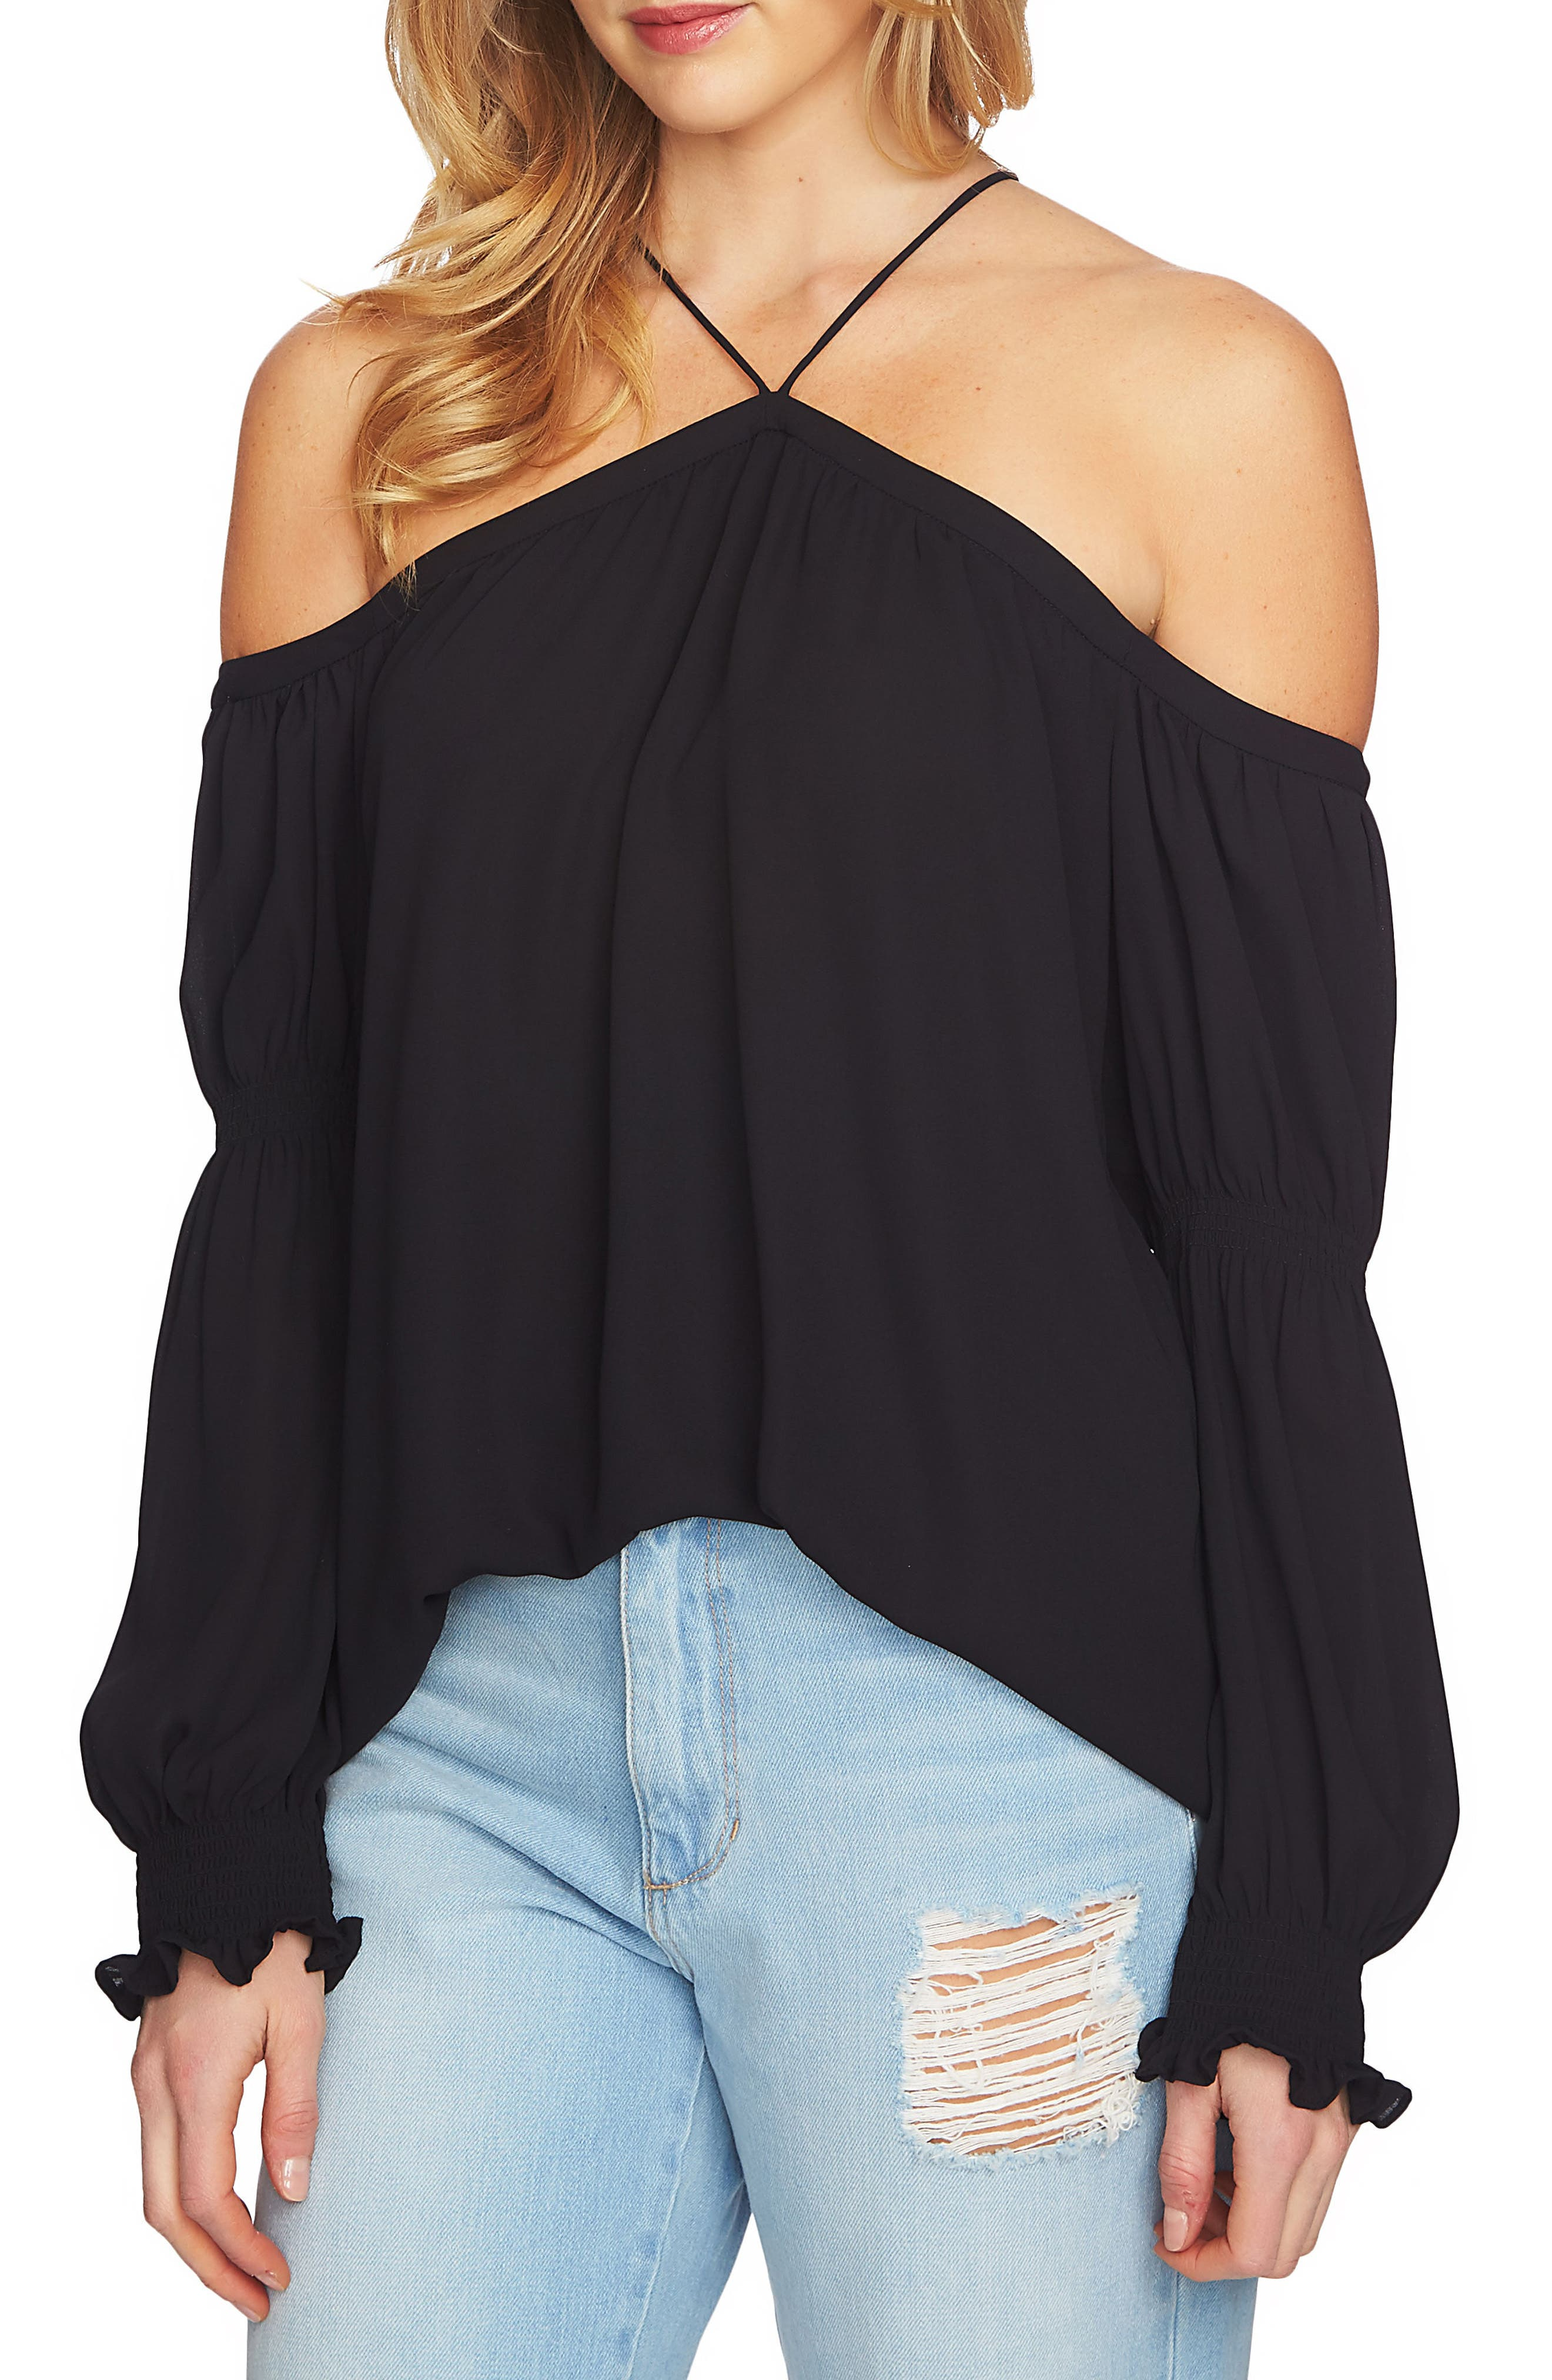 Main Image - 1.STATE Off the Shoulder Blouse